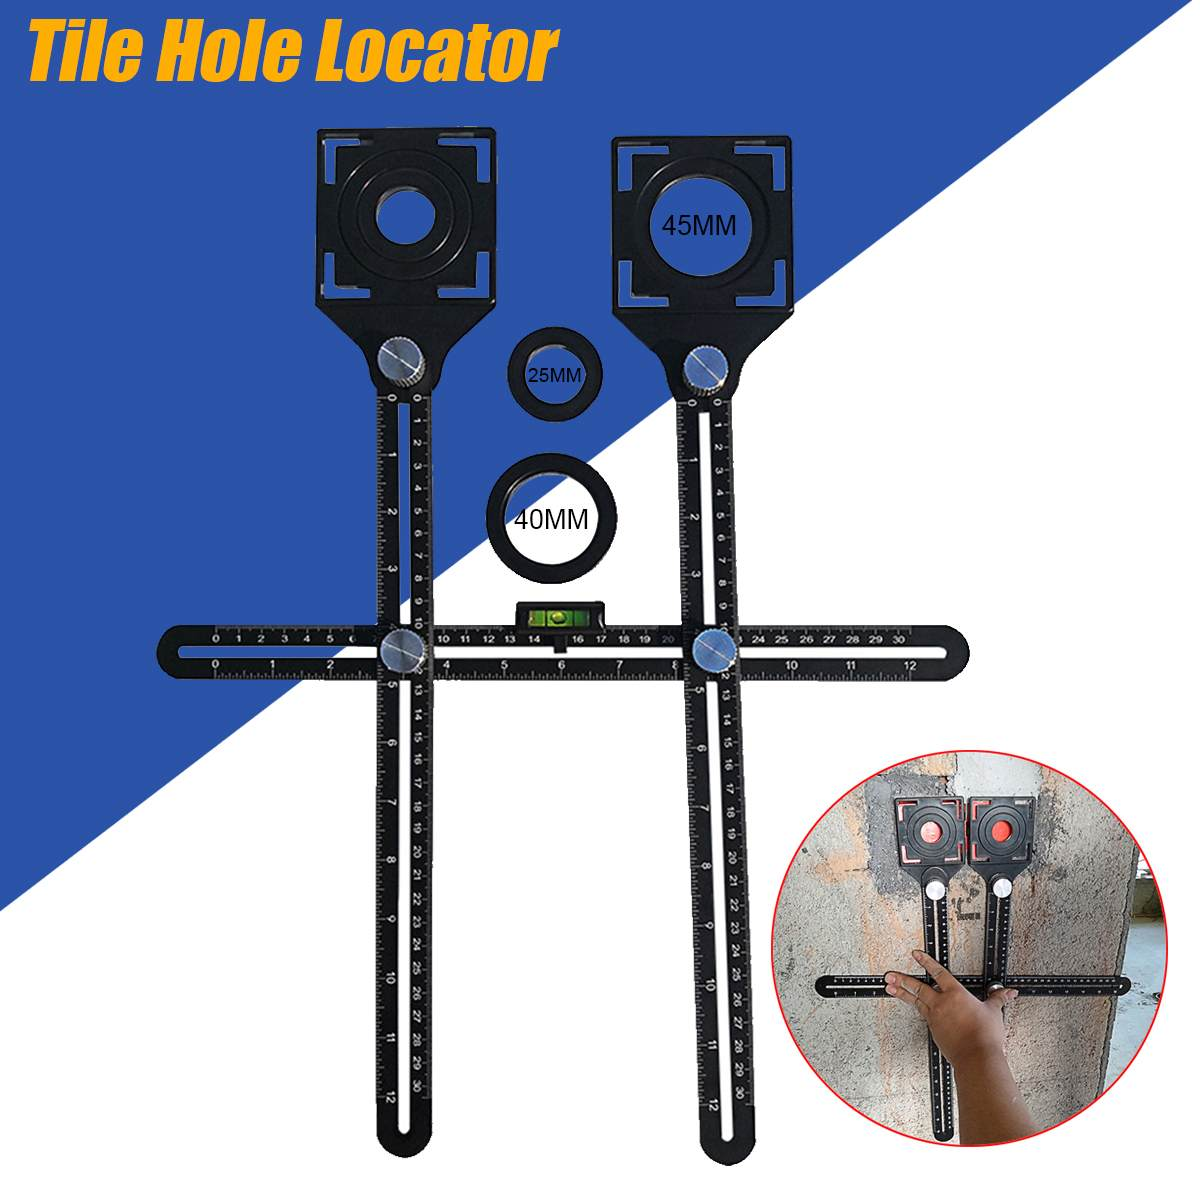 Double Head Multi Angle Measuring Ruler Protractors Adjustable Ruler Floor Tile Hole Locator Glass Woodworking Universal Puncher